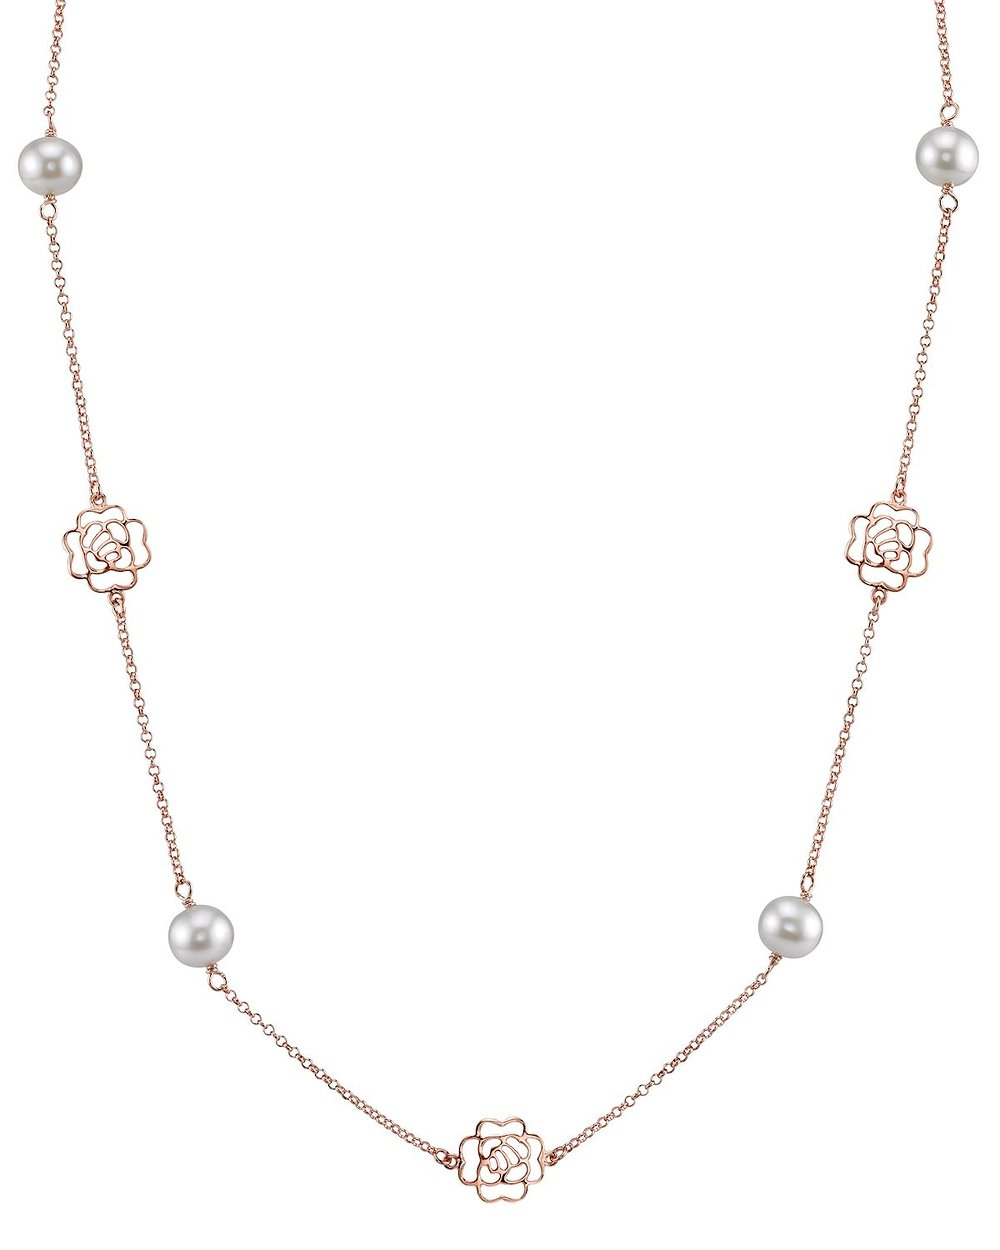 7-8mm Genuine White Freshwater Cultured Pearl Rose Gold Fiona Necklace for Women